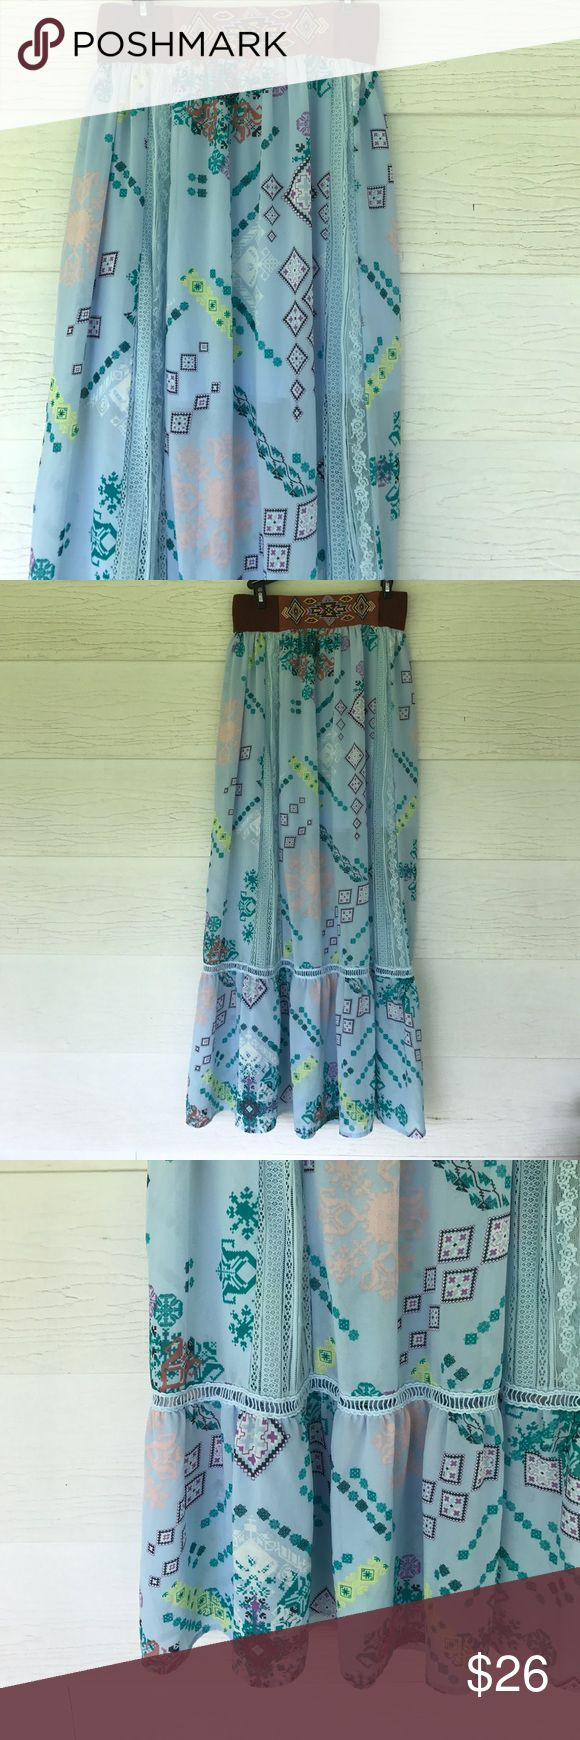 Boho skirt Size large. Blue boho skirt. Has brown elastic waistband. Lined to knee.  Perfect for festival season! kinnucans Skirts Maxi